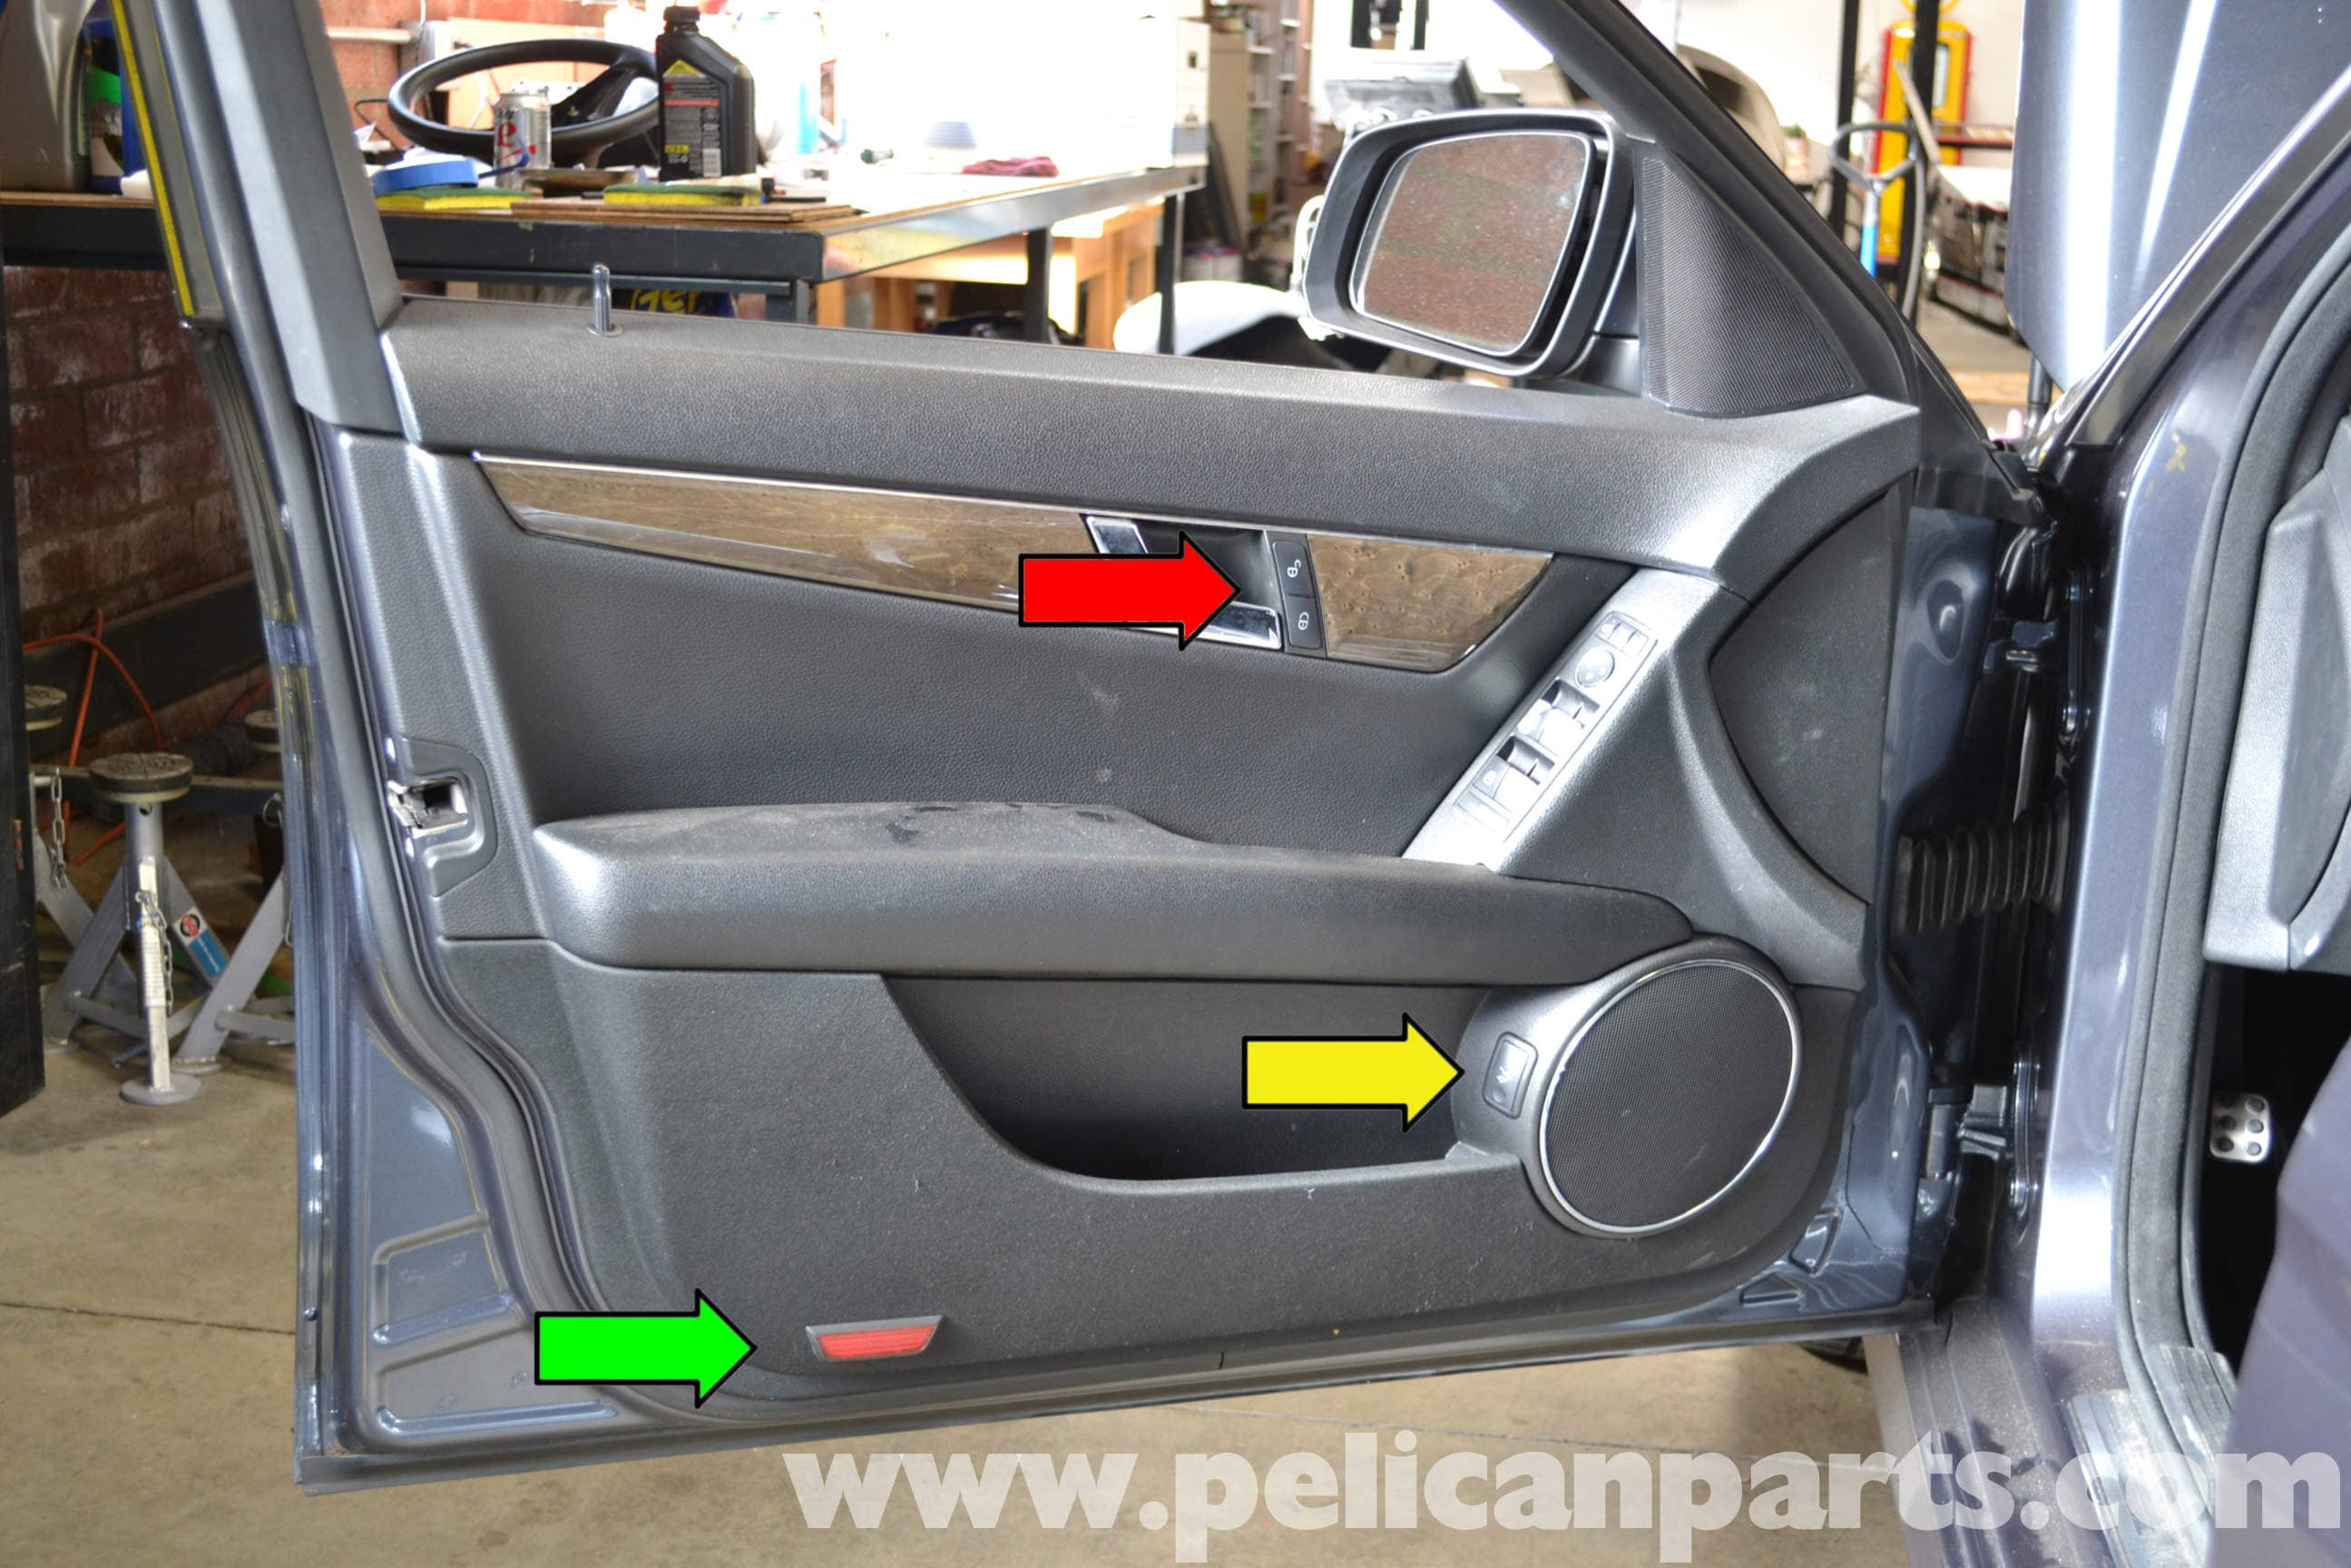 Mercedes benz w204 door panel light and switch replacement for Aftermarket parts for mercedes benz